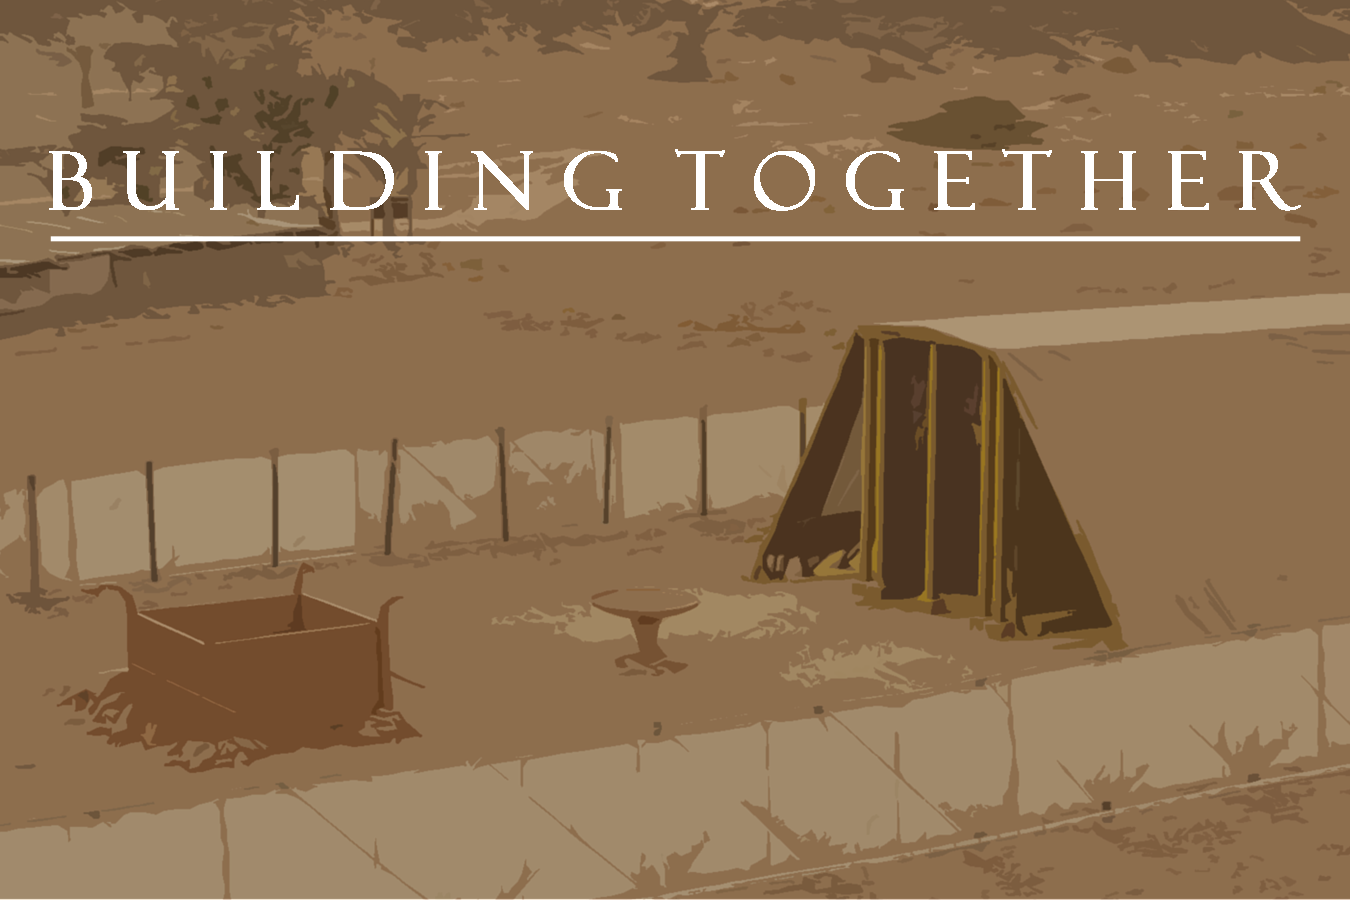 Building Together